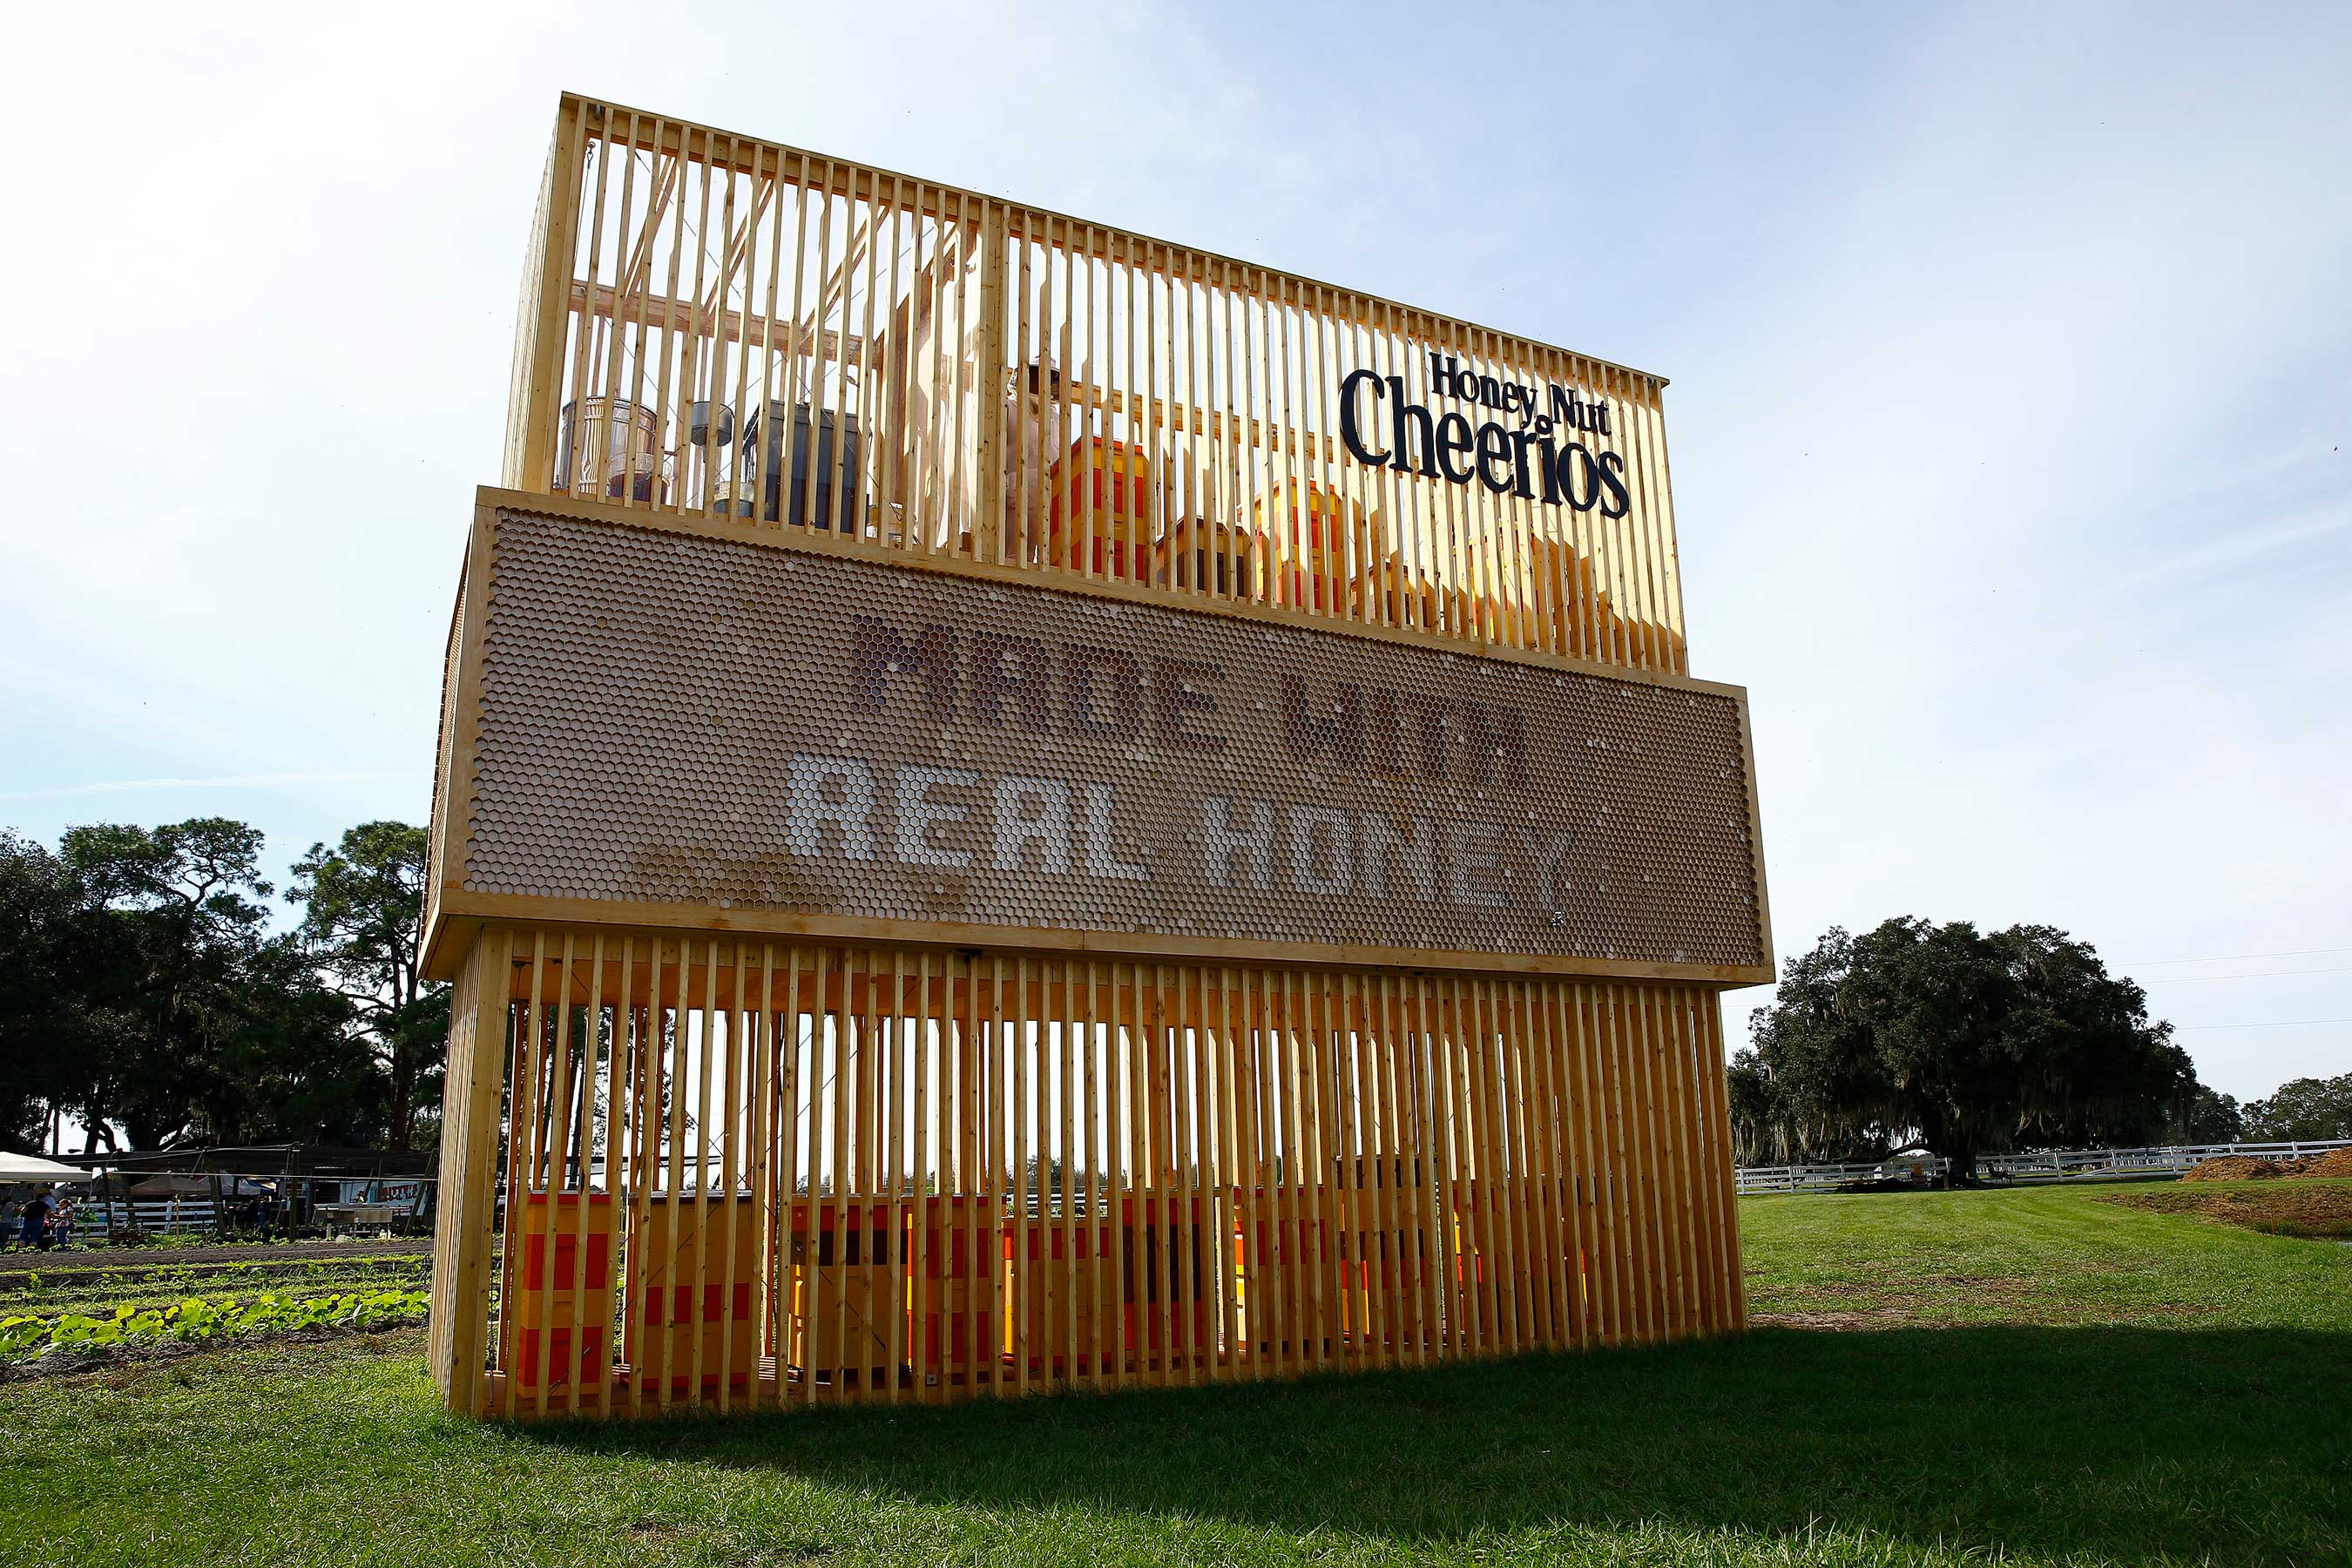 First-of-its-kind Living Billboard Unveiled by Honey Nut Cheerios on November 14, 2015